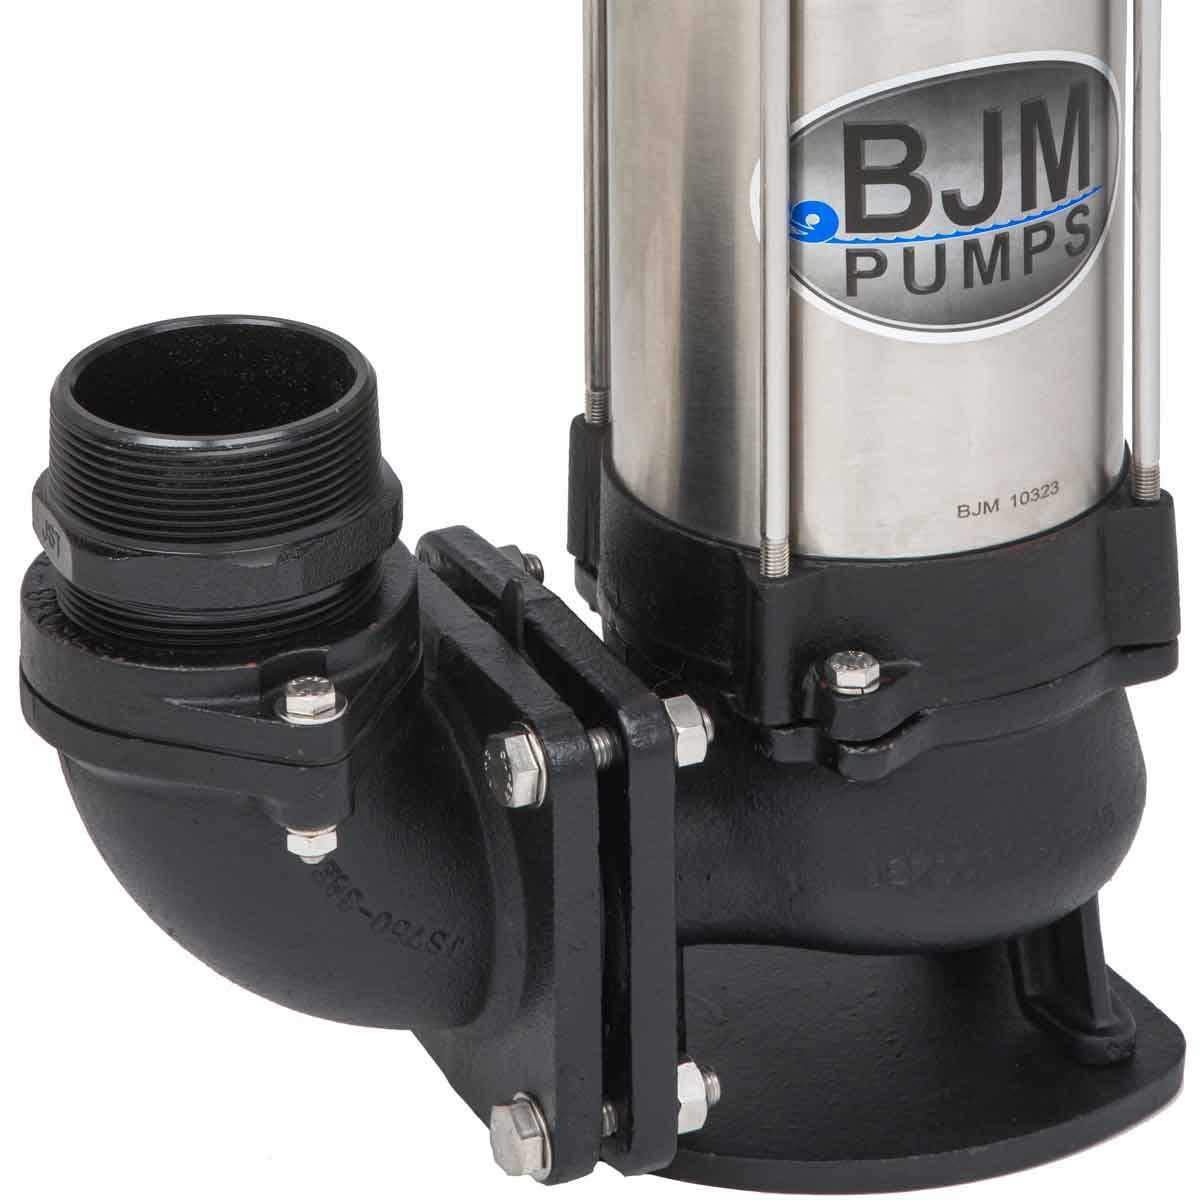 3 inch Submersible Pump BJM